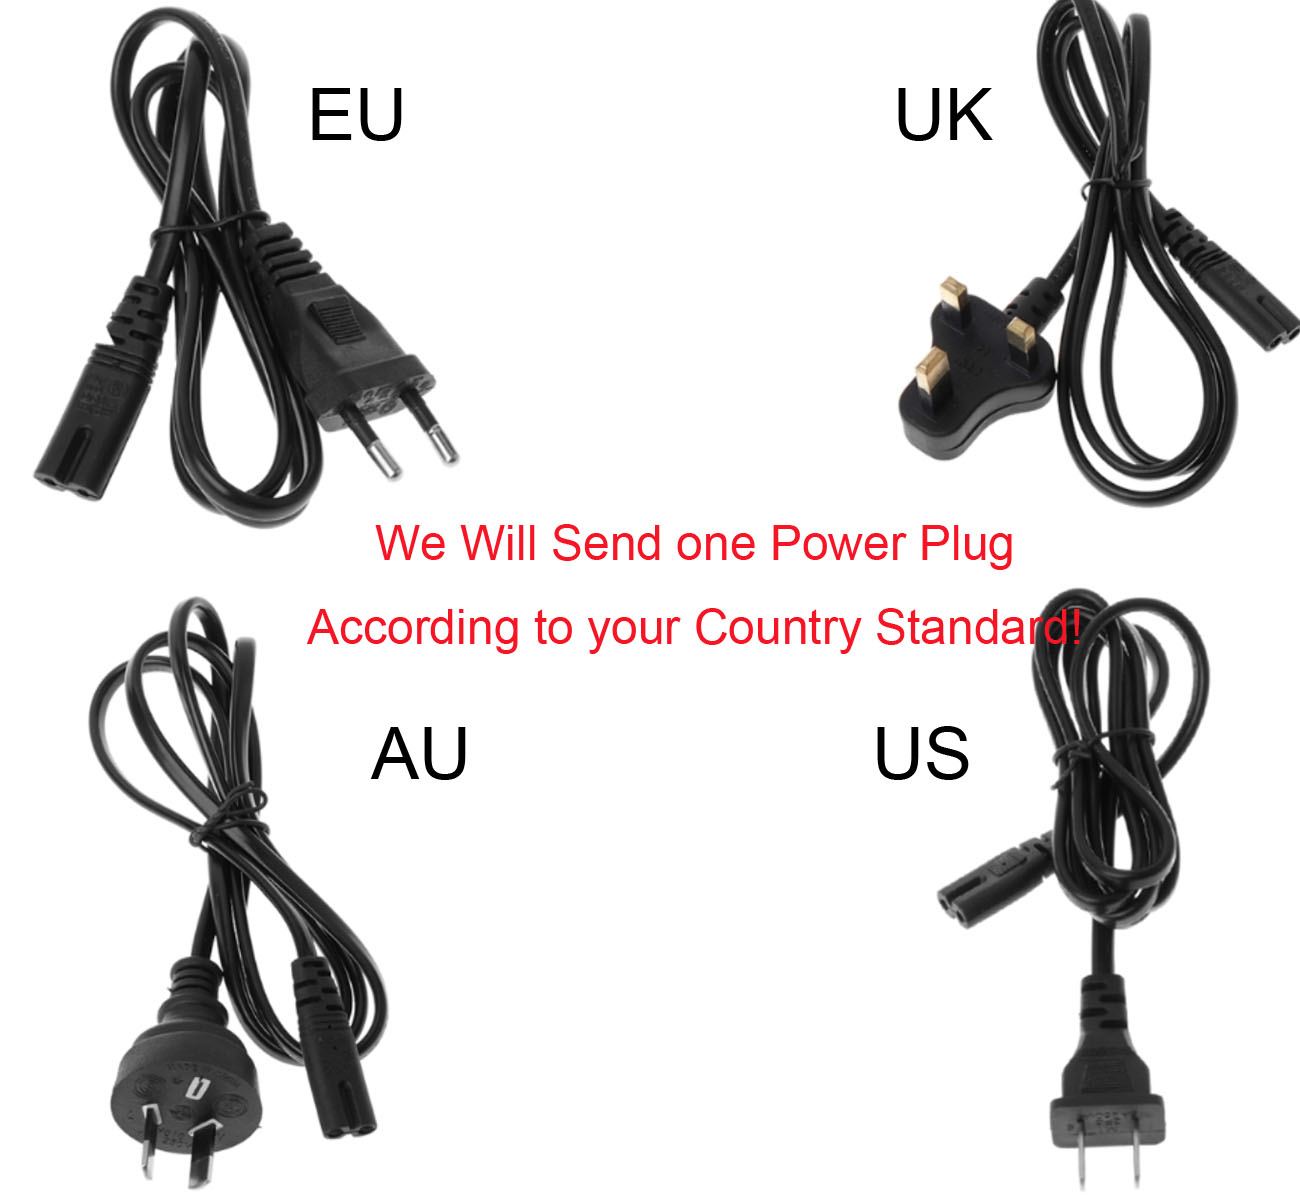 DCR-HC47E DCR-HC48E Handycam Camcorder AC Power Adapter Charger for Sony DCR-HC45E DCR-HC46E